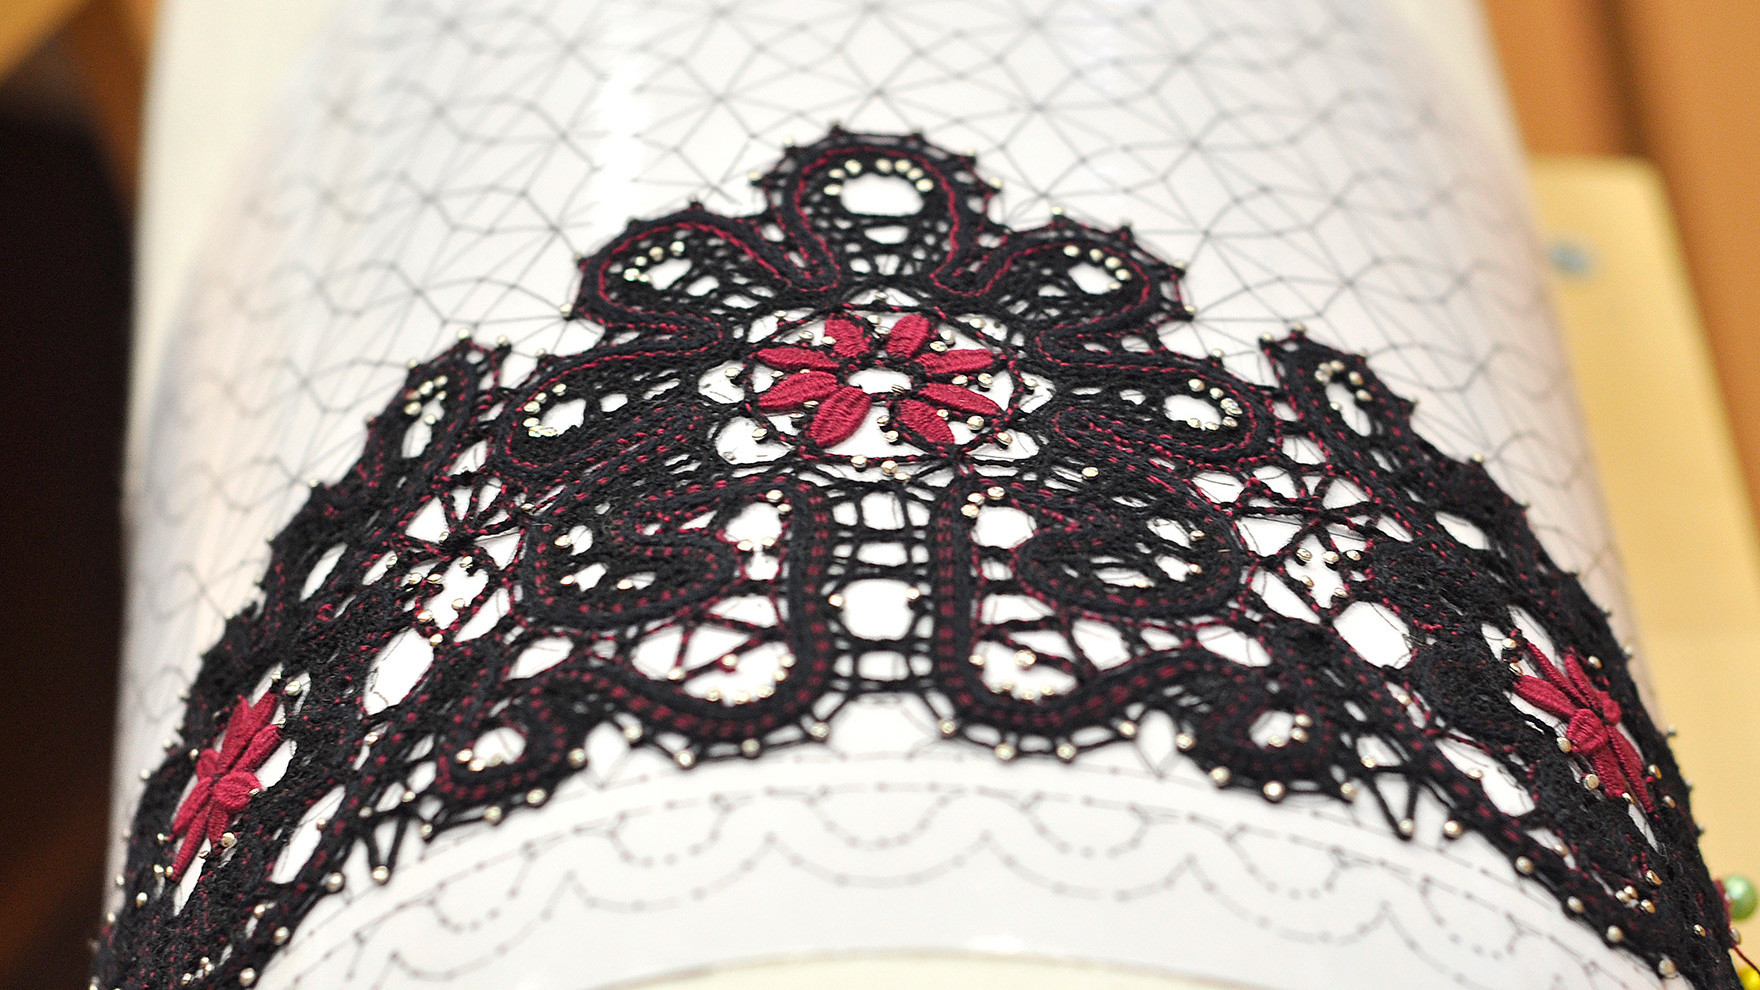 The modern Vologda lace can be any color.